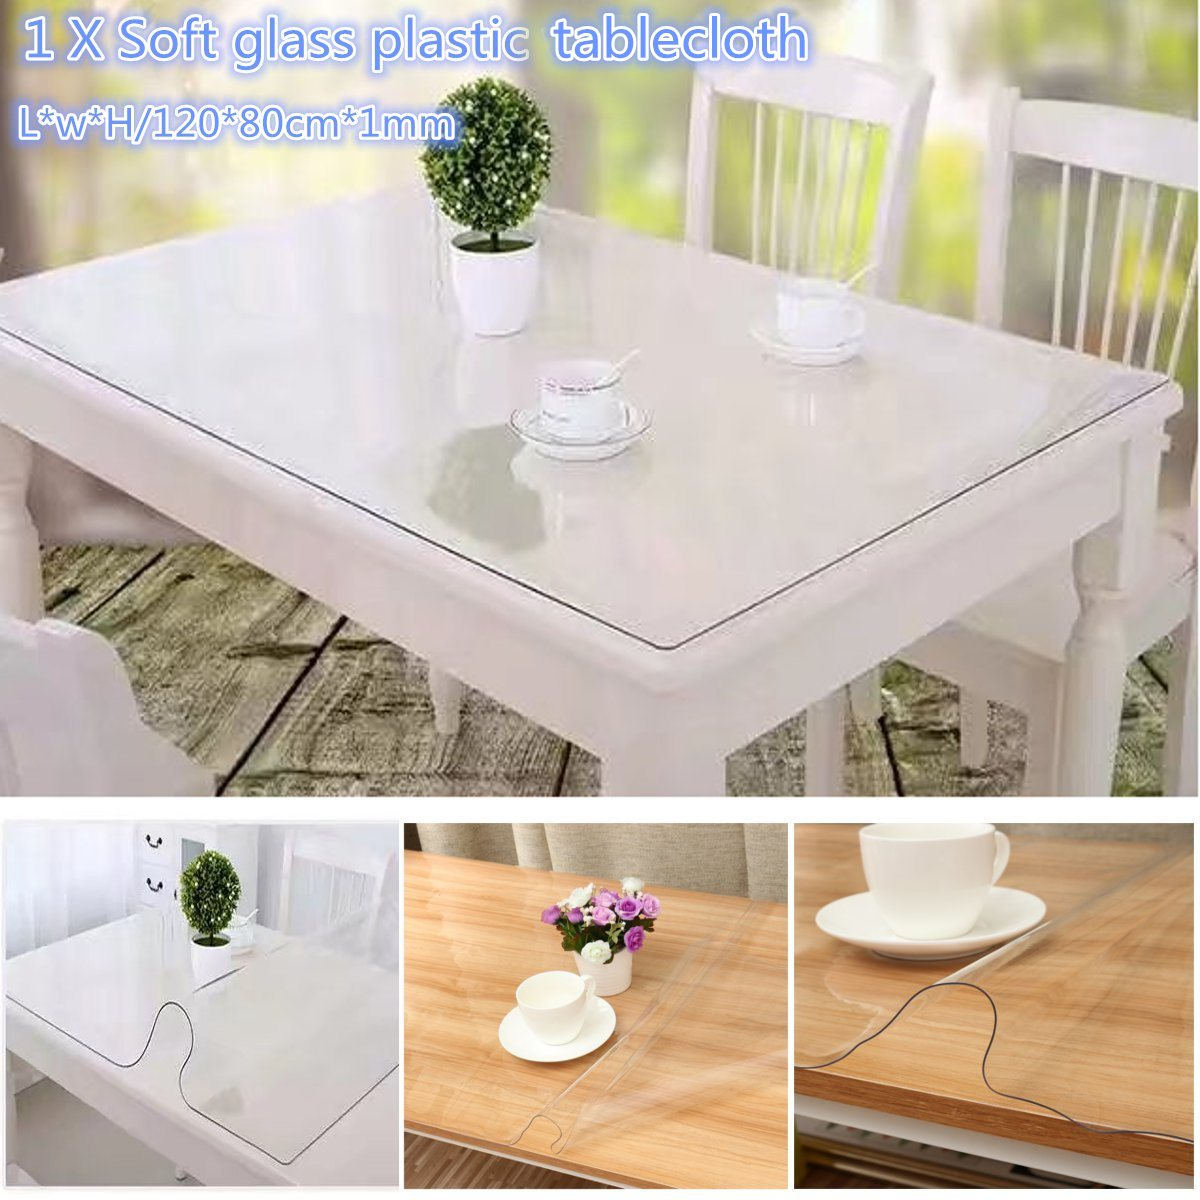 Transparent Soft Plastic Tablecloth 120*80cm Waterproof PVC Cloth Mat Table Runner Kitchen Dining Table Decoration Accessories(China (Mainland))